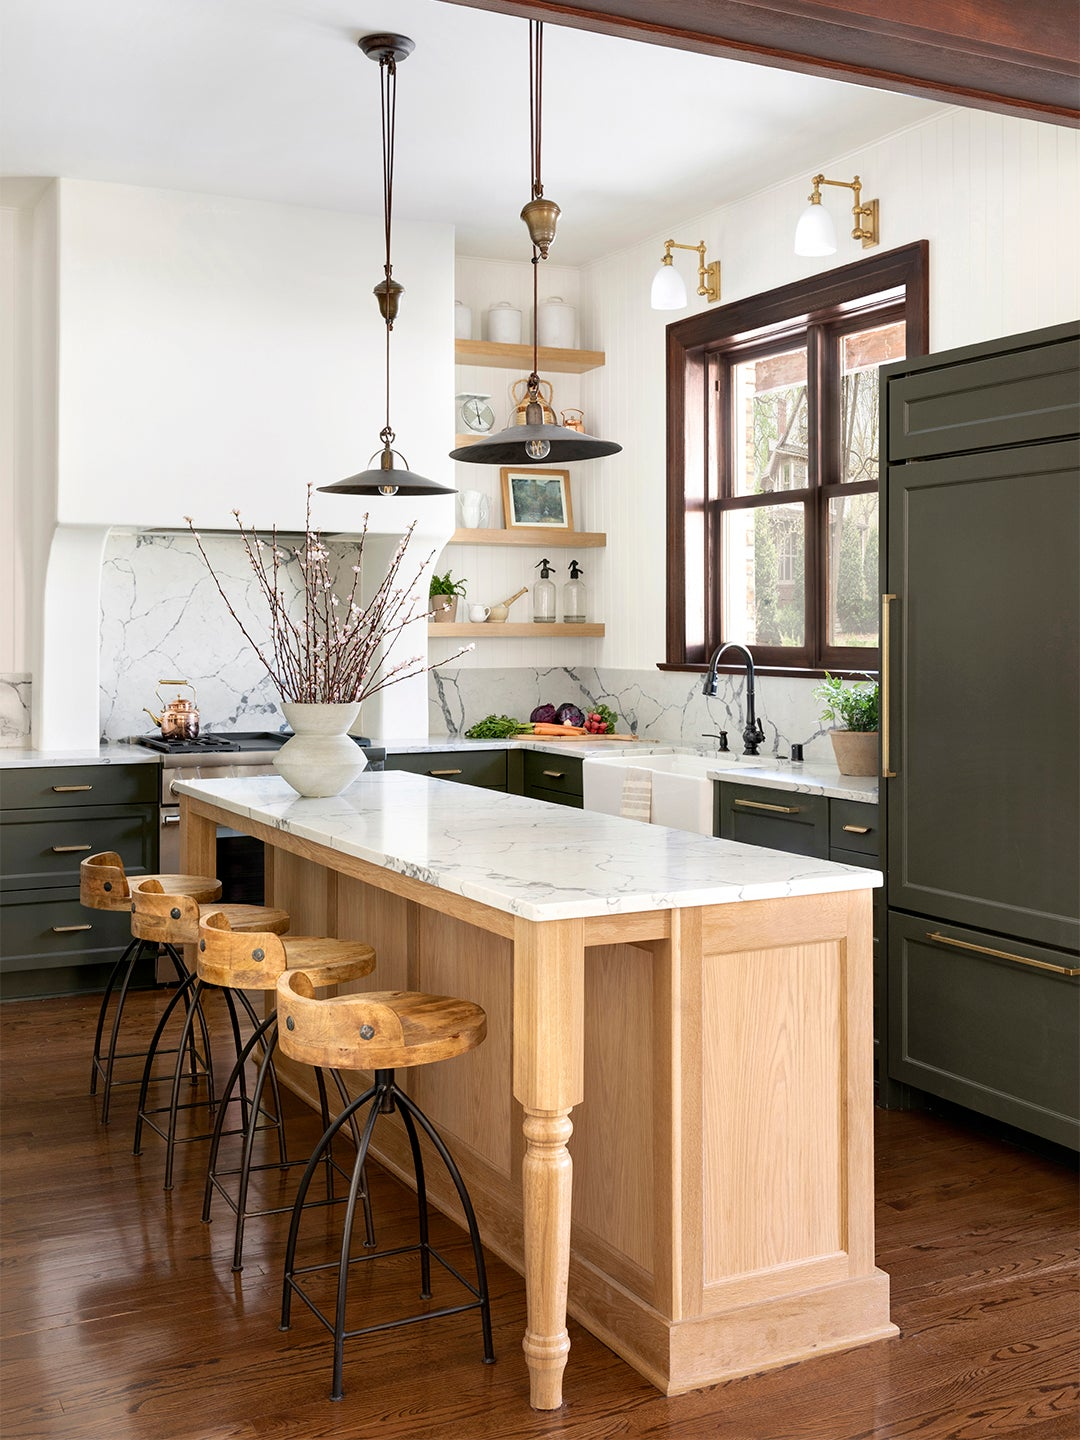 00-FEATURE-White-Traditional-Kitchen-renovation-domino